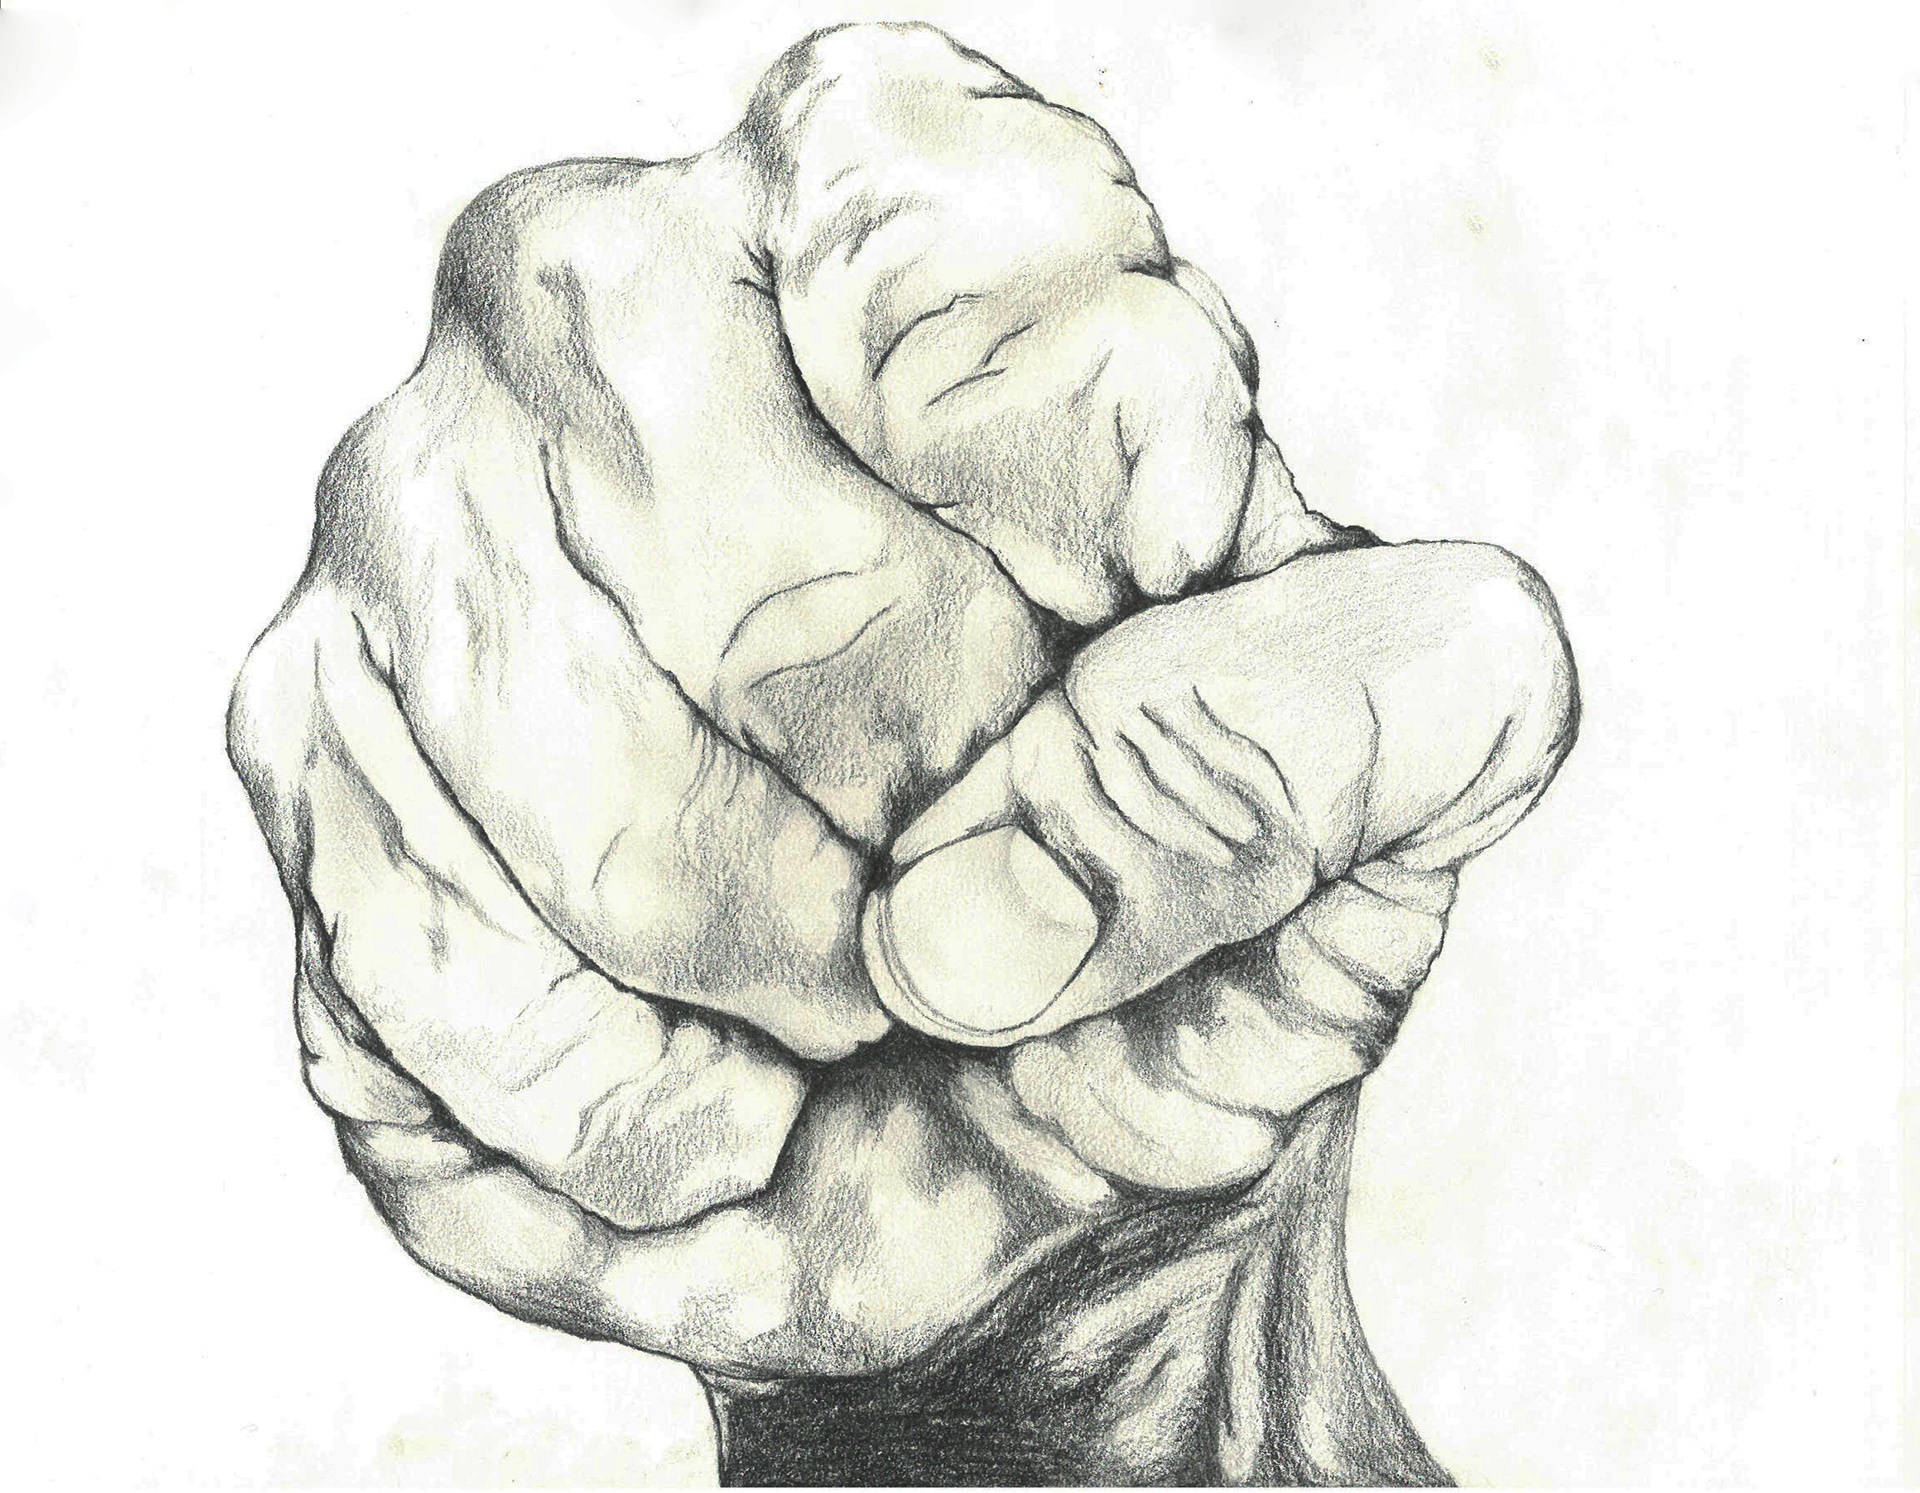 Fist Pencil Draw